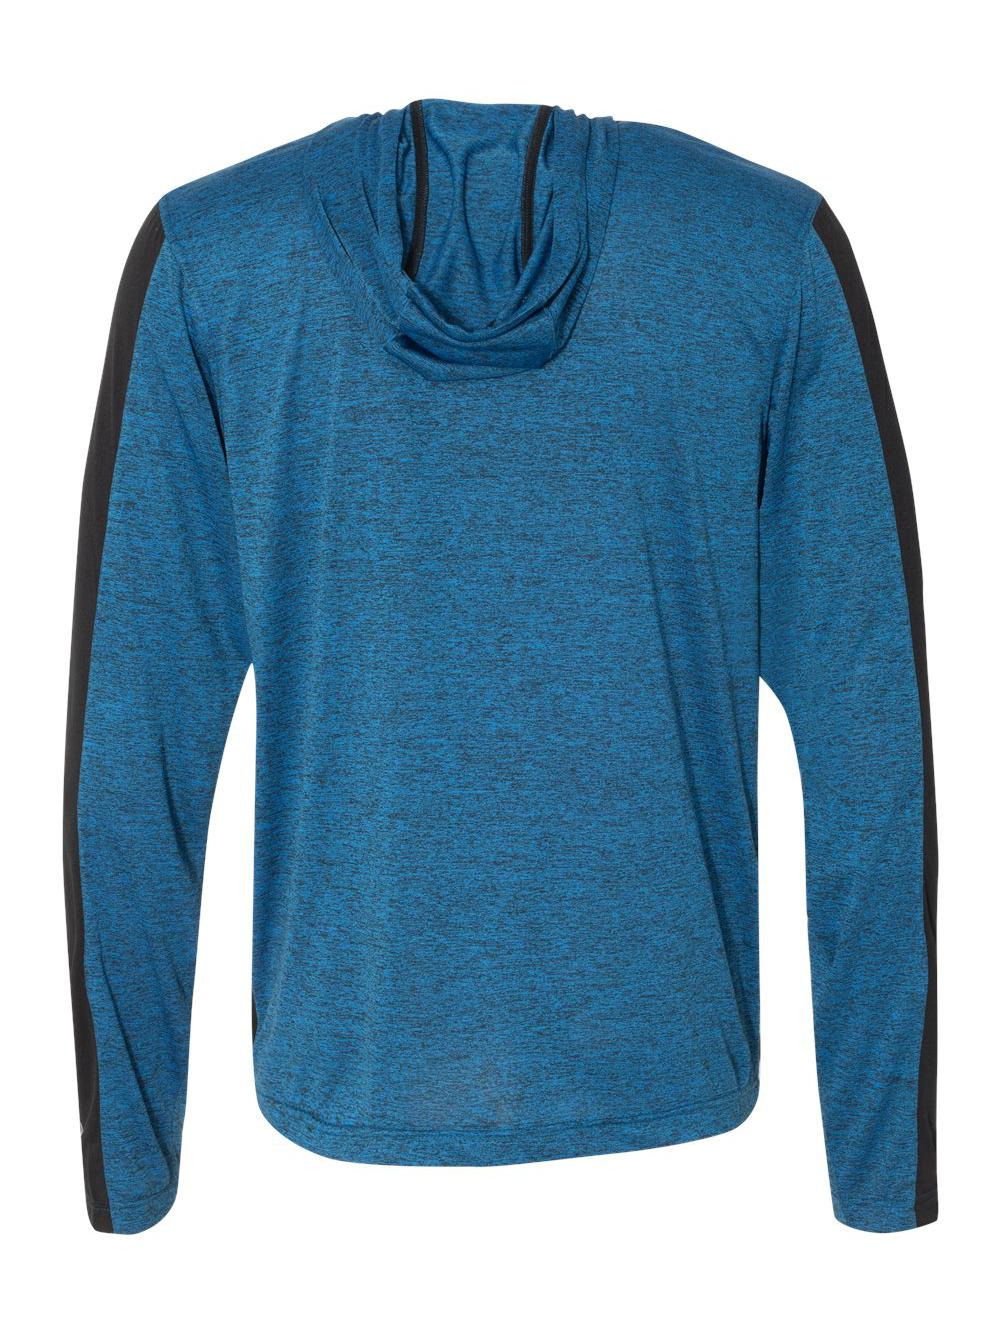 Rawlings-Performance-Cationic-Hooded-Pullover-T-Shirt-8199 thumbnail 10